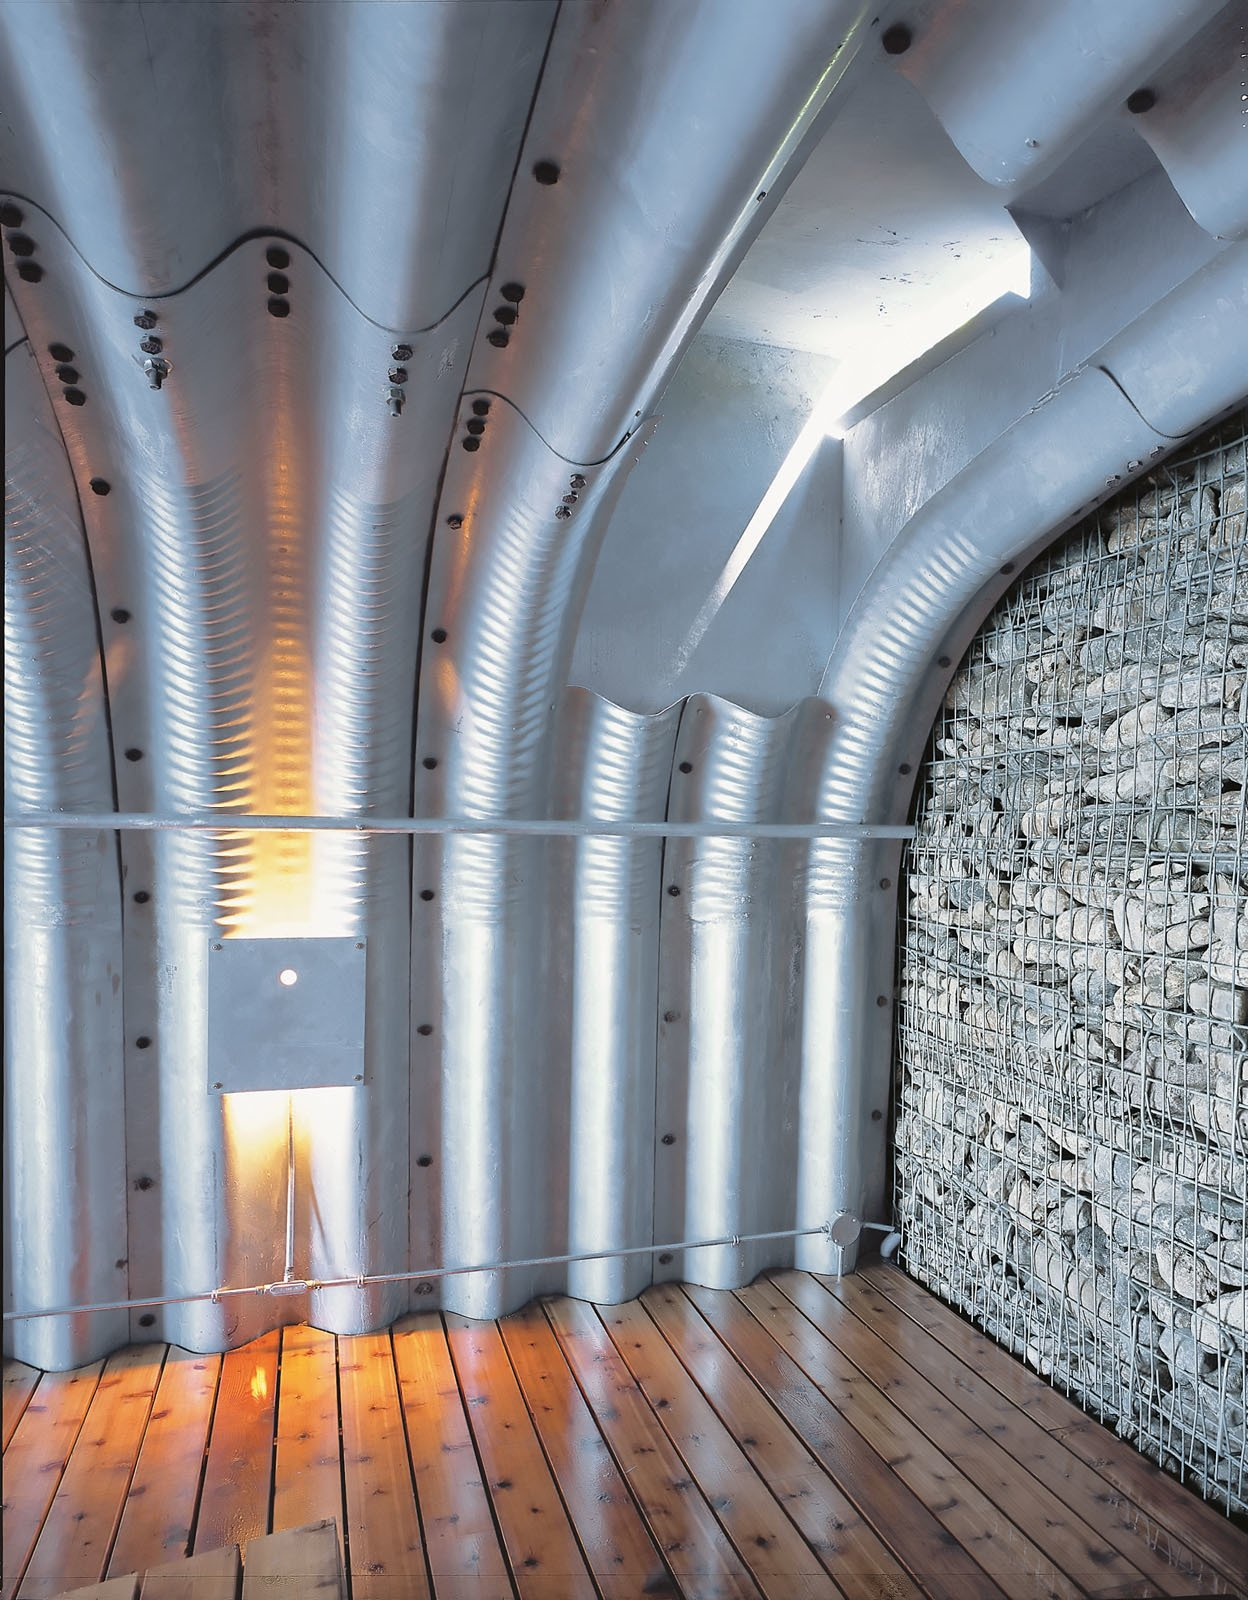 """Being inside the boathouse, with its deep corrugations, is a unique experience. """"You feel like you're in an upside-down boat or in a whale's body,"""" Adam says. """"It's quite beautiful.""""  Search """"arch support"""" from About a Boat"""